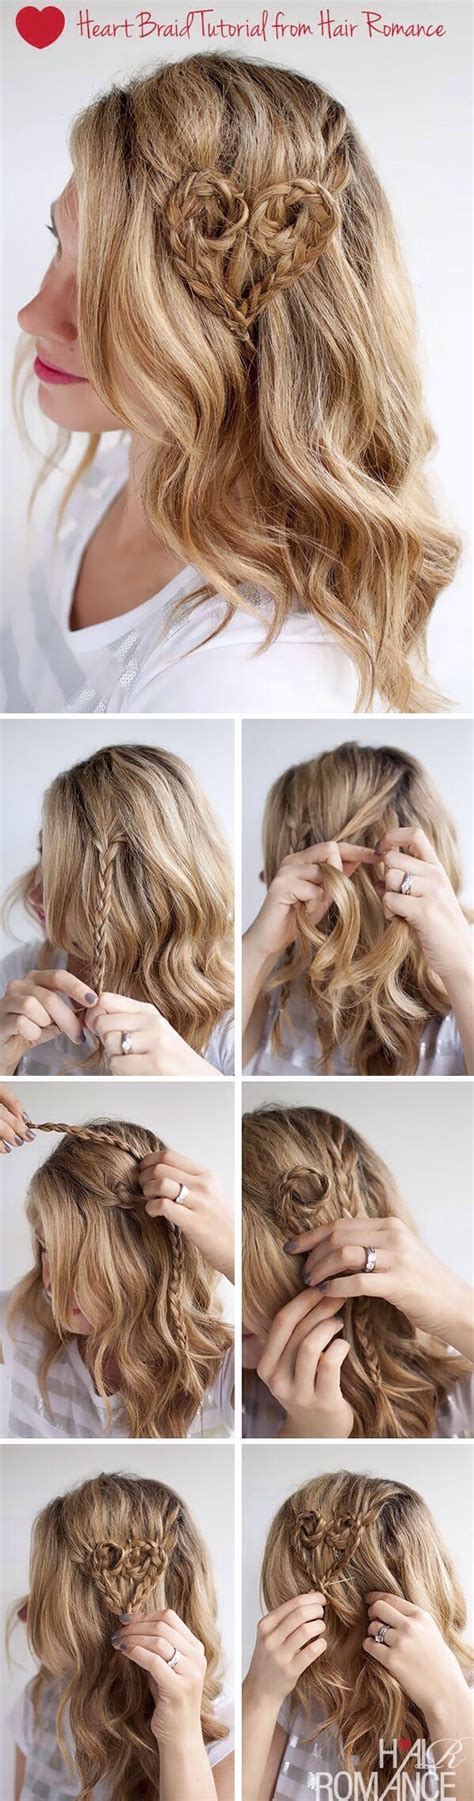 braided hairstyles heart 20 most beautiful braided hairstyle tutorials for 2014